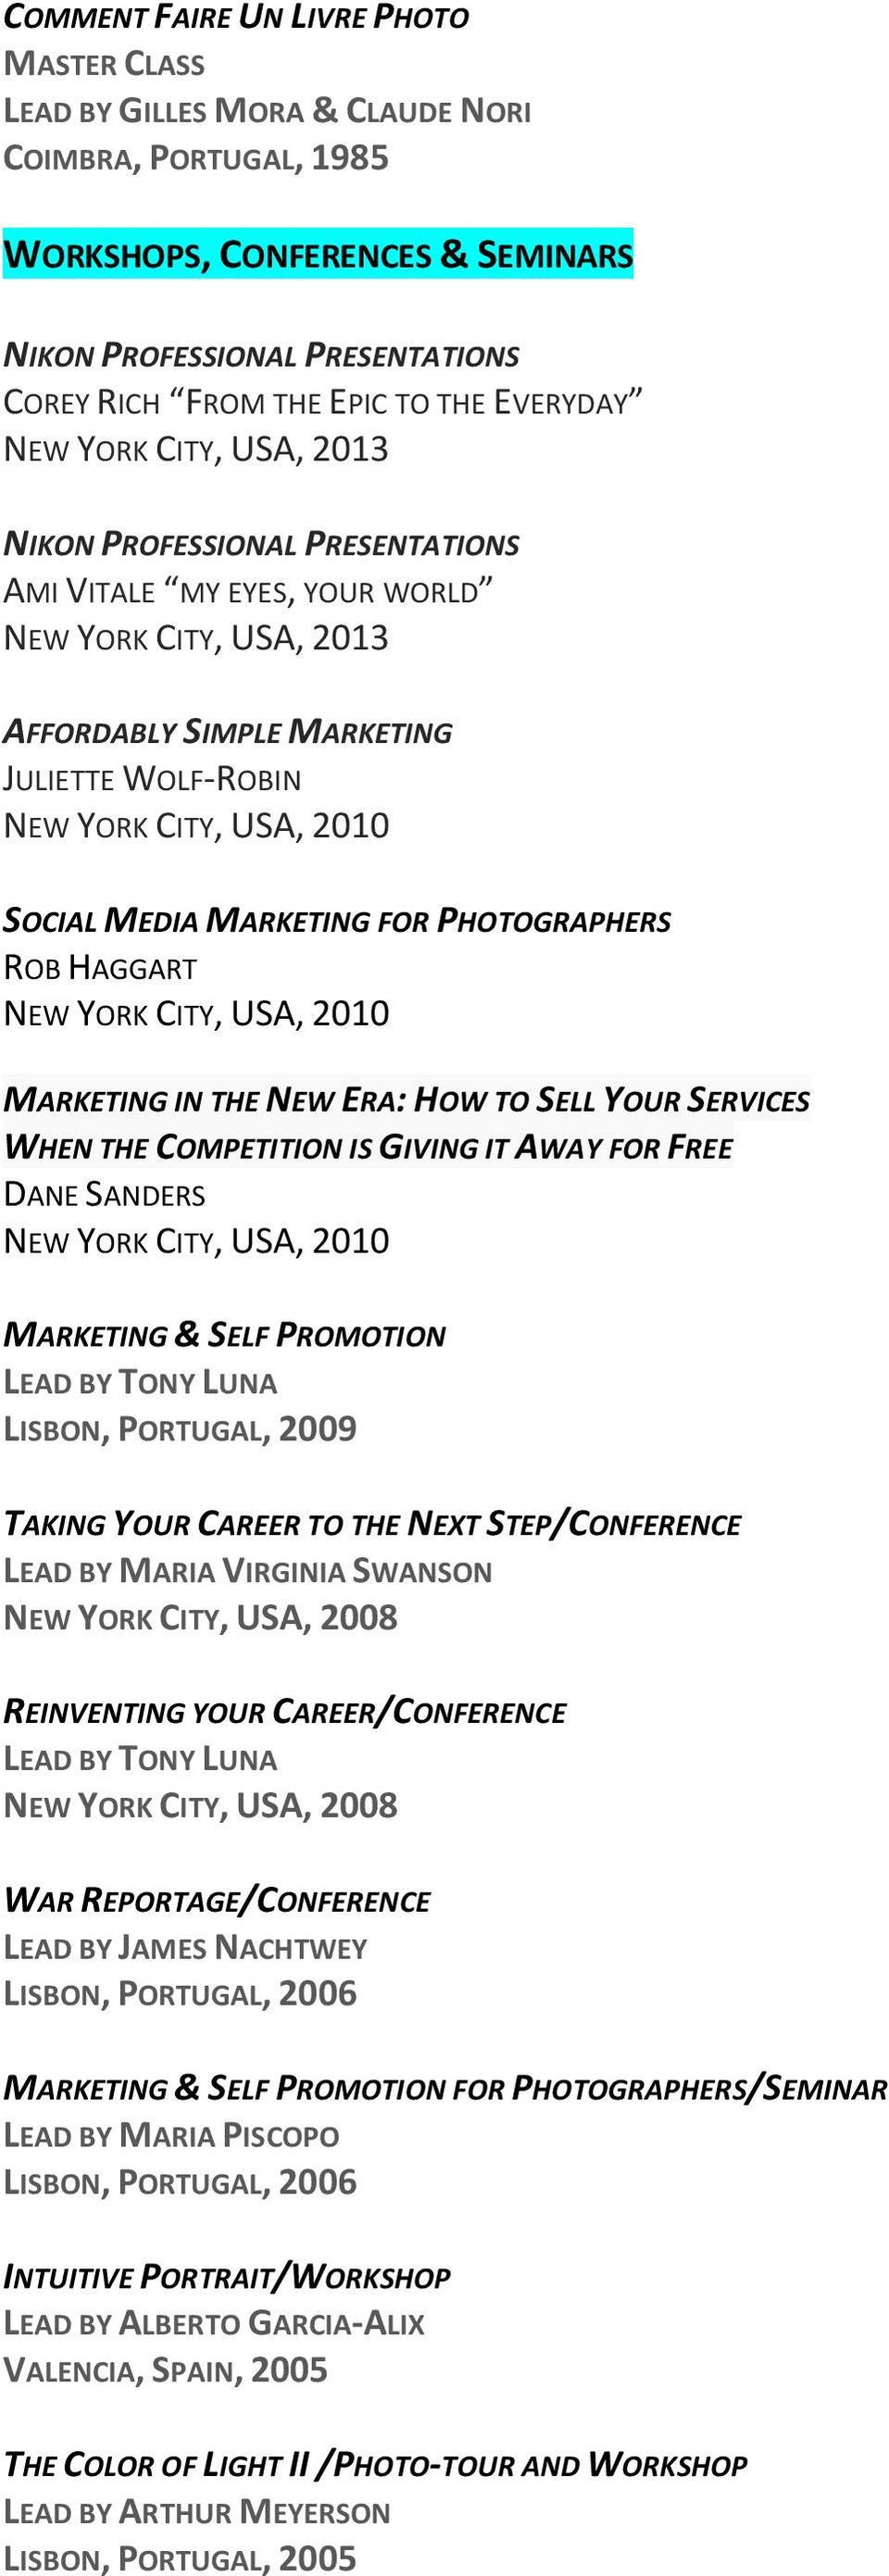 SOCIAL MEDIA MARKETING FOR PHOTOGRAPHERS ROB HAGGART NEW YORK CITY, USA, 2010 MARKETING IN THE NEW ERA: HOW TO SELL YOUR SERVICES WHEN THE COMPETITION IS GIVING IT AWAY FOR FREE DANE SANDERS NEW YORK